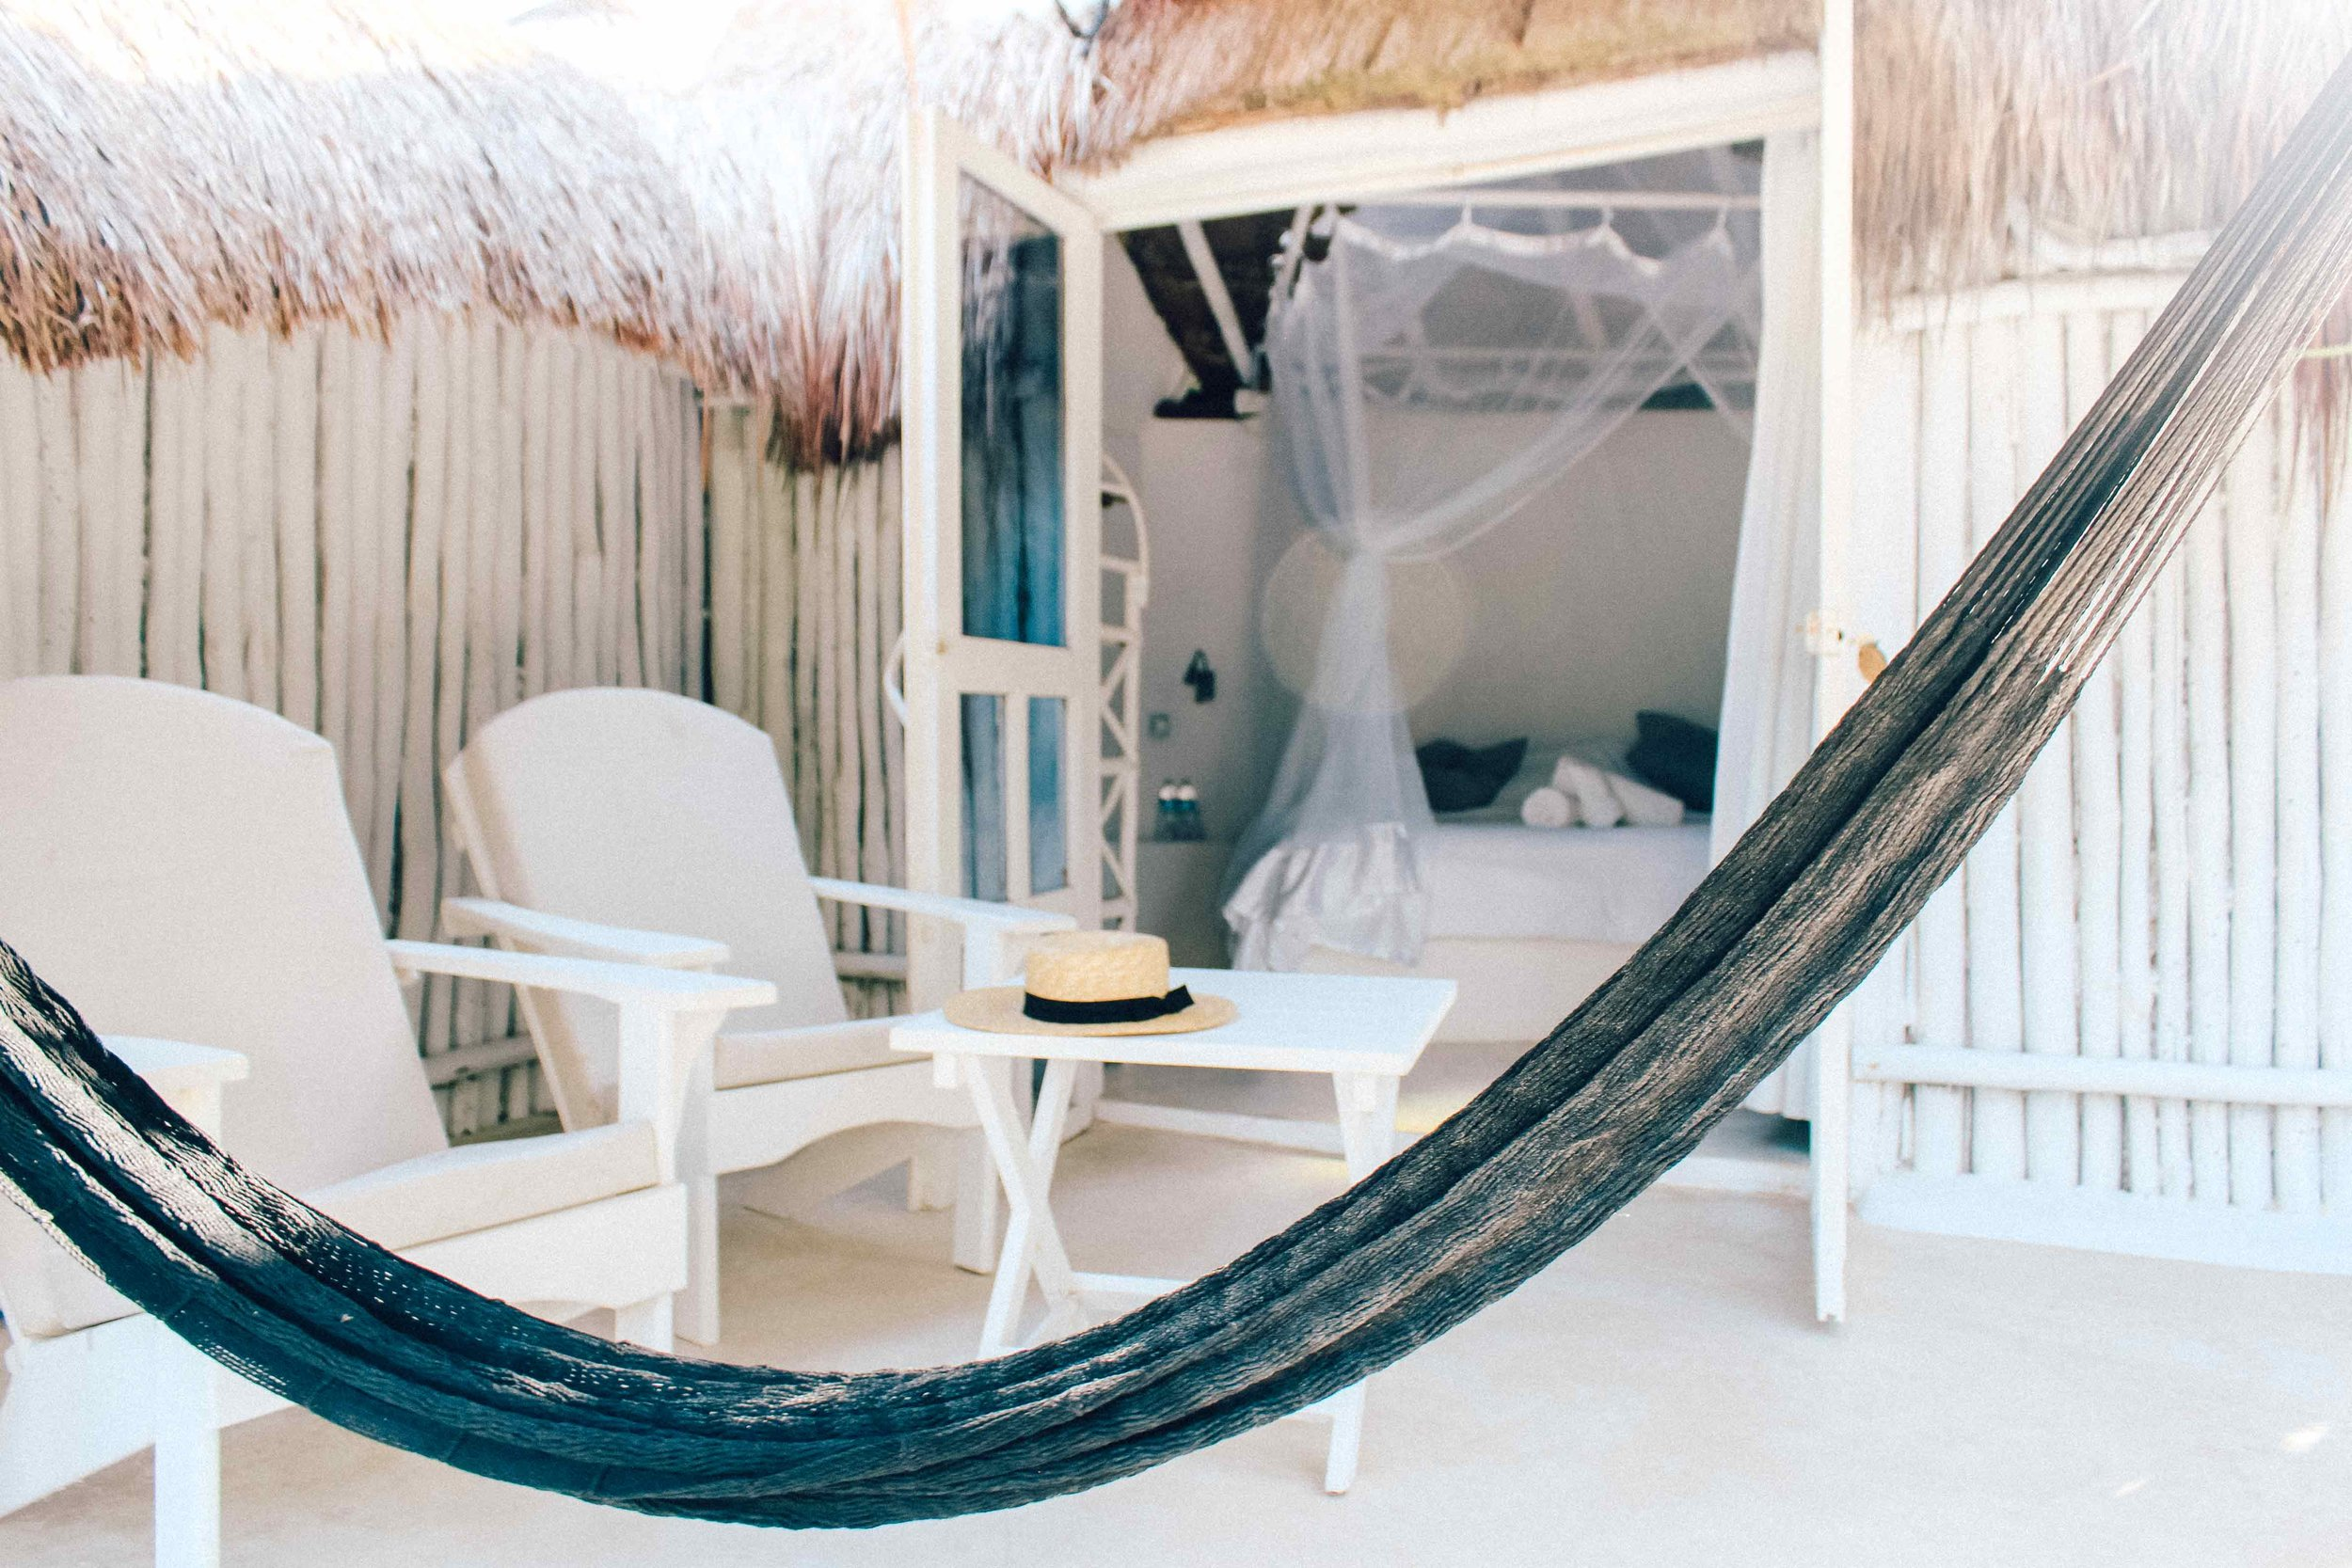 Coco Tulum - our sweet beach shack accomodation